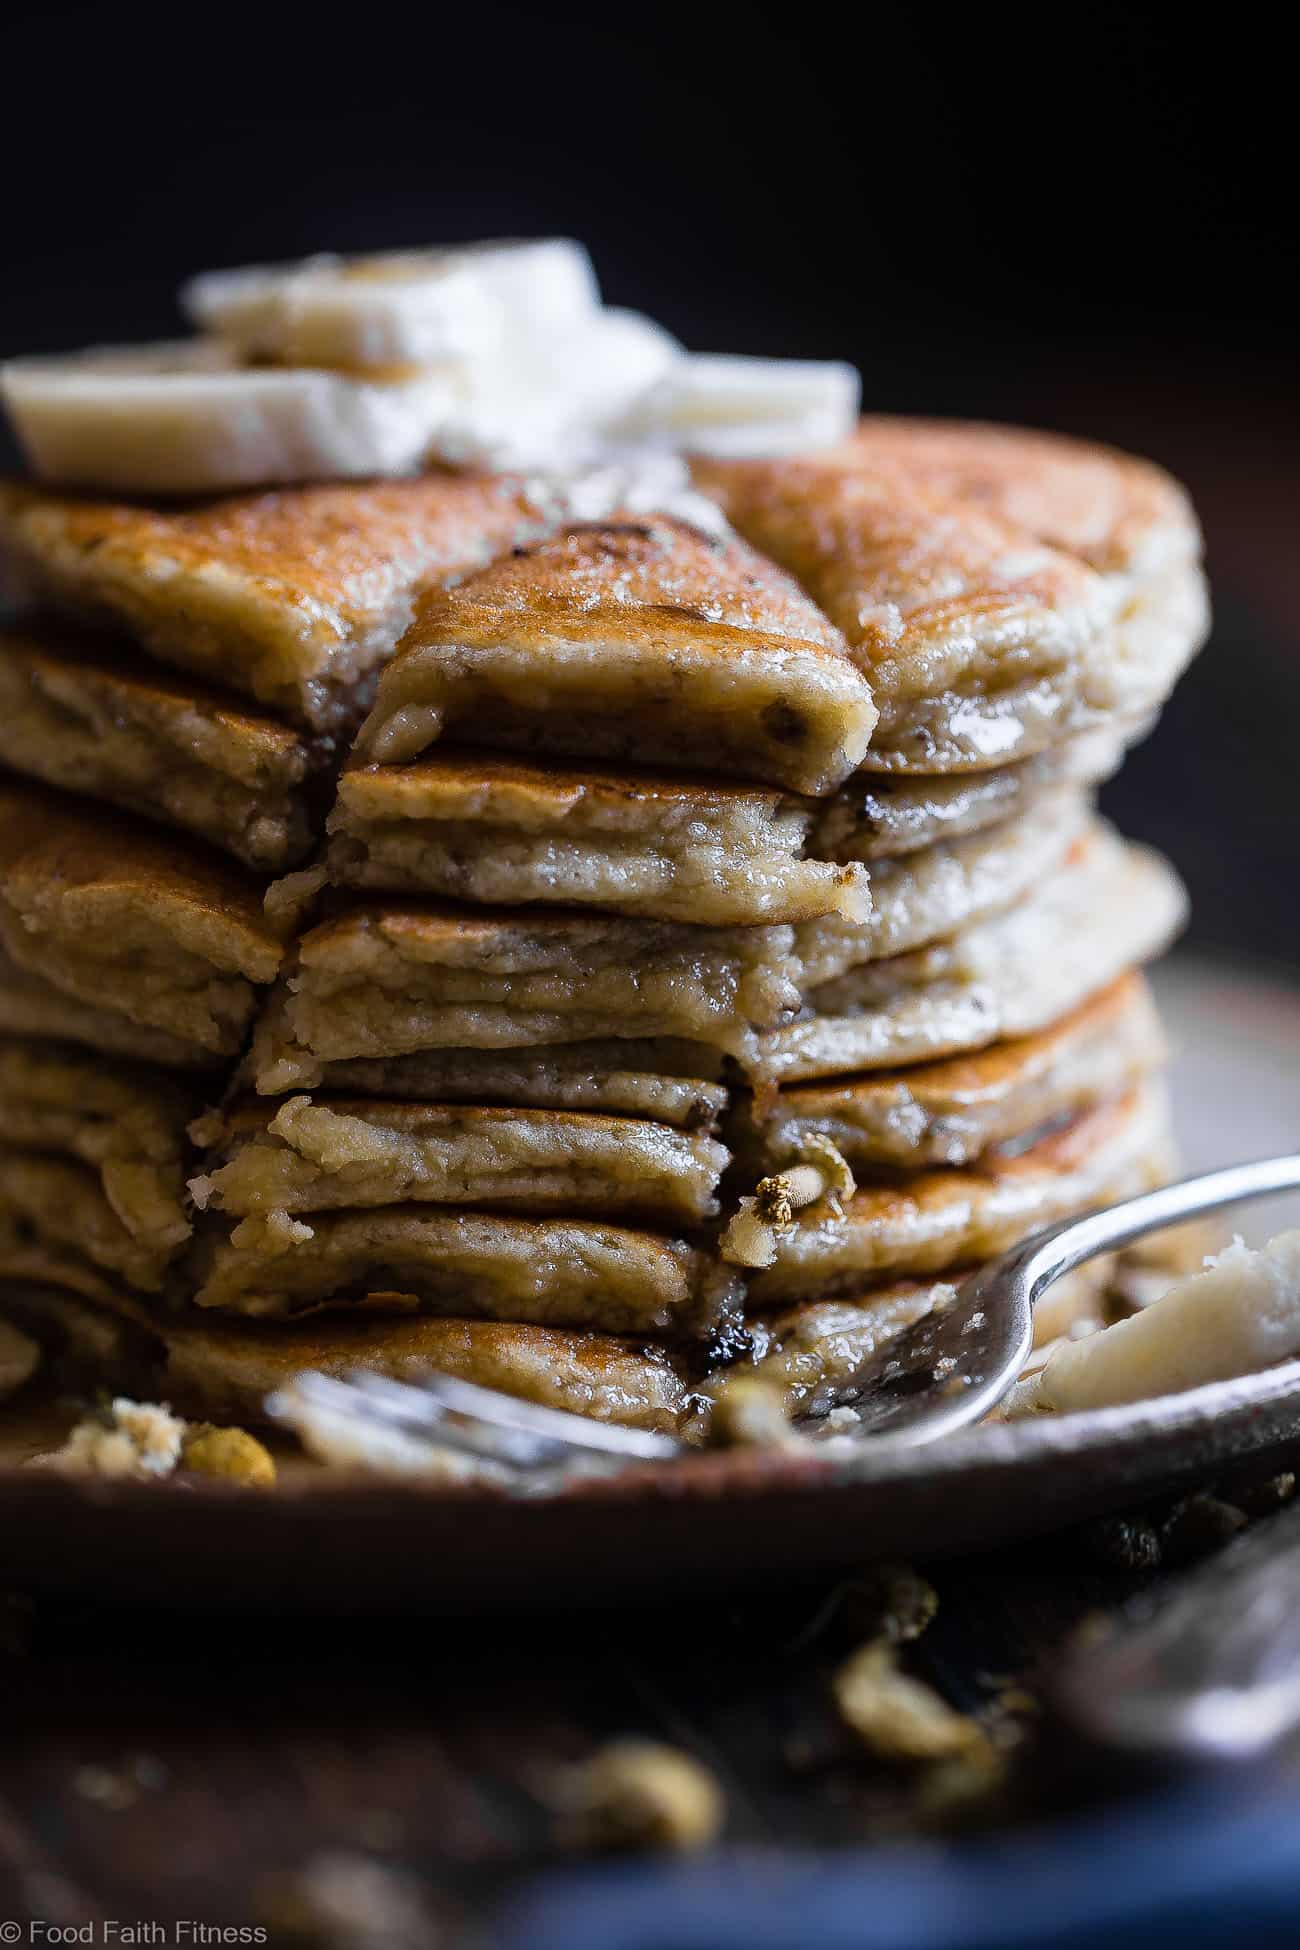 Easy Paleo Banana Pancakes with Coconut Flour -Thesequick and easy banana pancakesare naturally sweetened, gluten, grain and dairy free and SO light and fluffy! The perfect healthy start to your day or weekend breakfast! | Foodfaithfitness.com | @FoodFaithFit